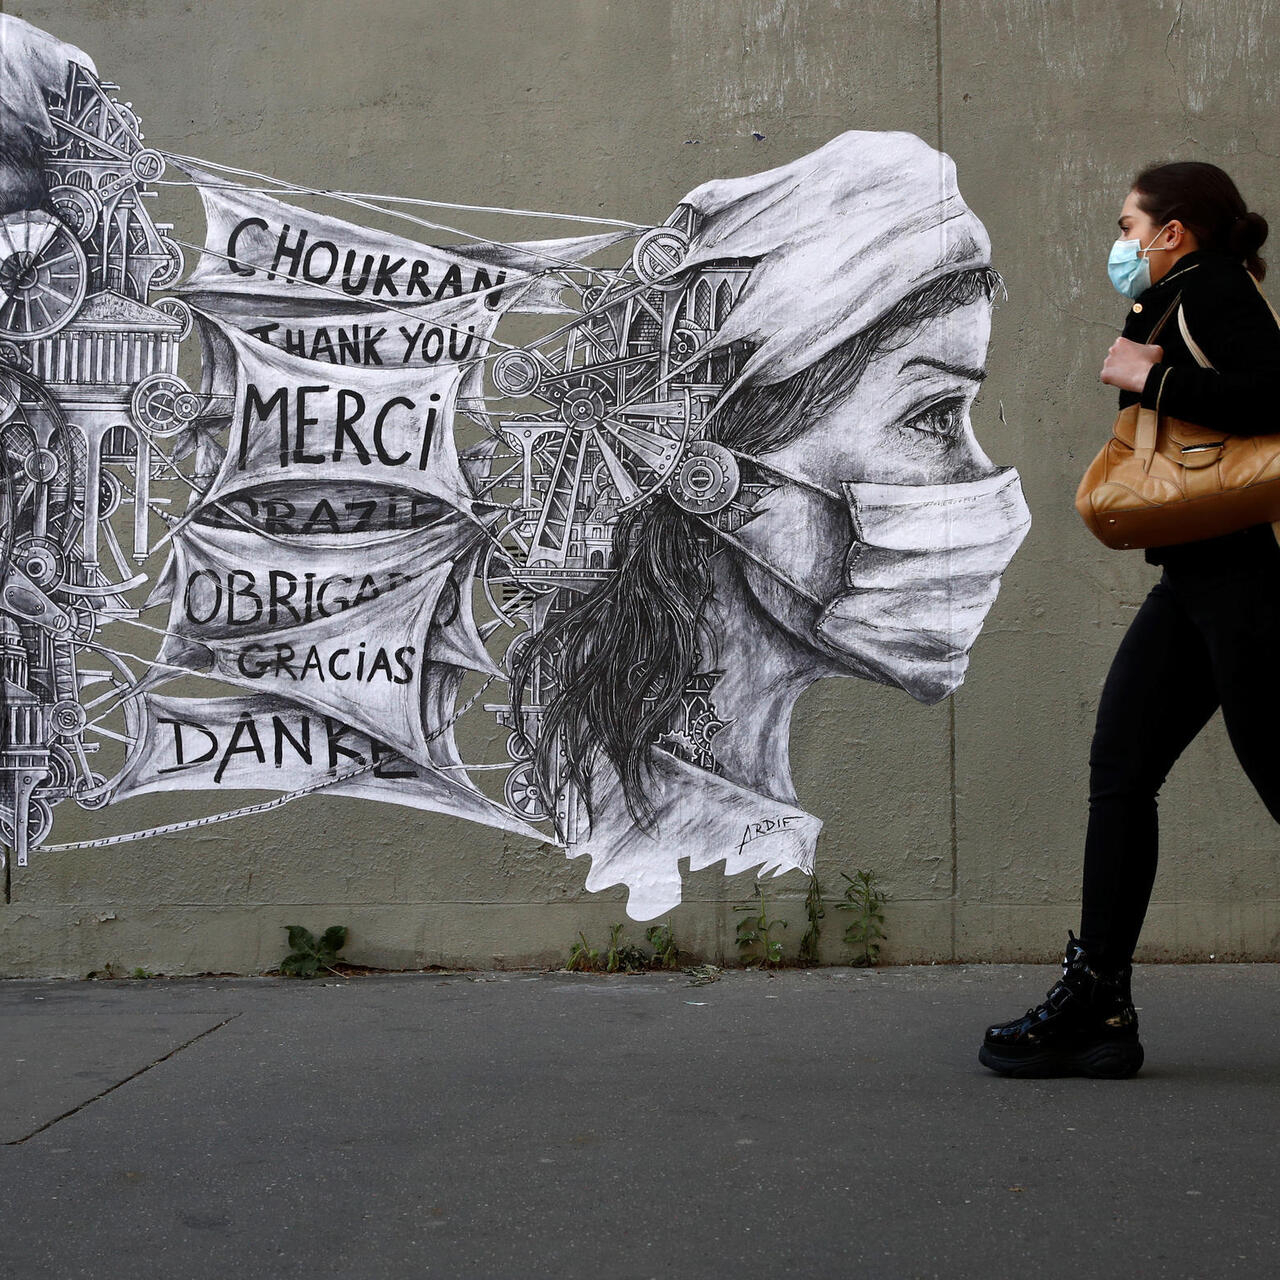 France records 104 new Covid-19 deaths as hospital numbers drop below 20,000